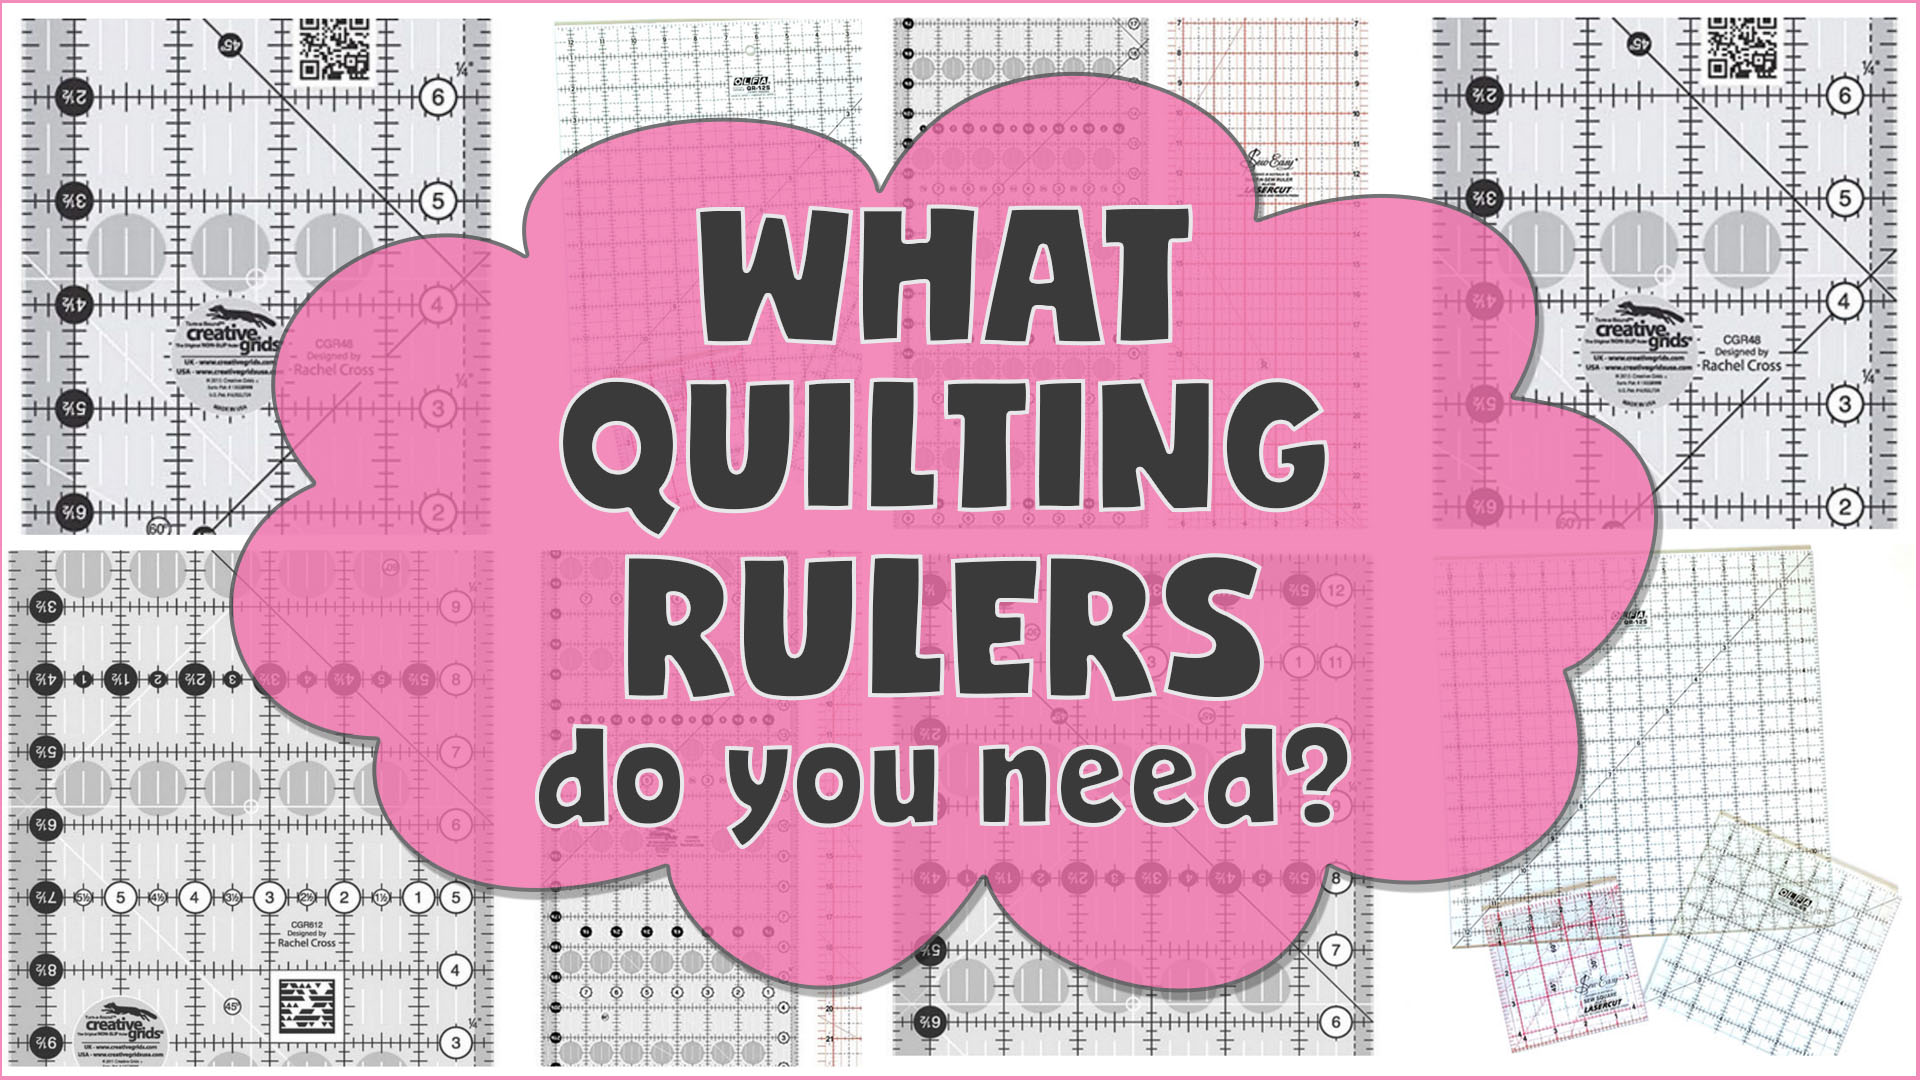 what quilting rulers do i need